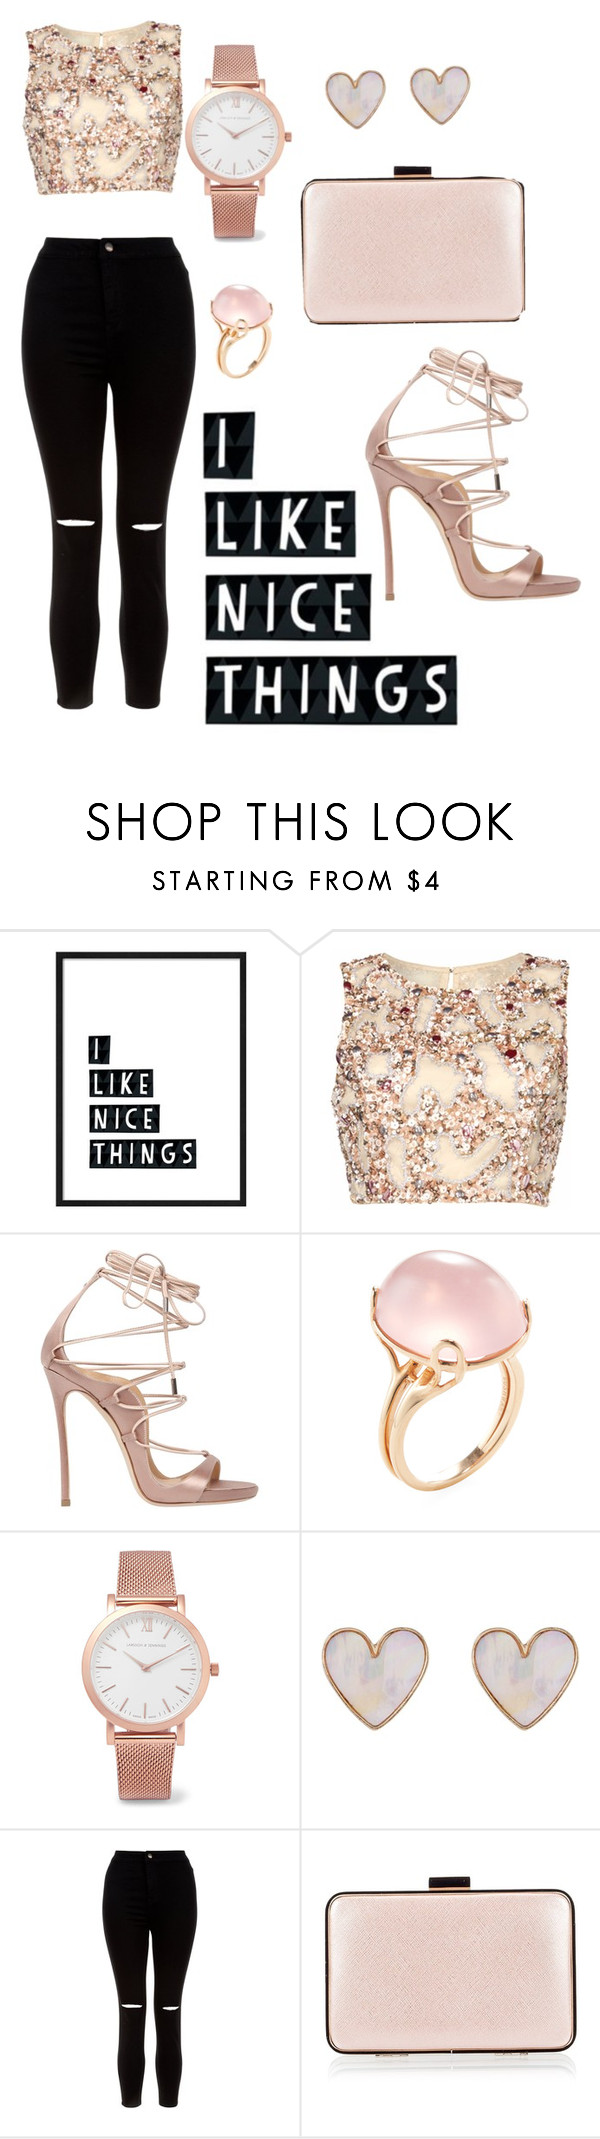 """""""A Little Bit Fancy"""" by chocolateimani ❤ liked on Polyvore featuring Raishma, Dsquared2, Goshwara, Larsson & Jennings, New Look and Coccinelle"""